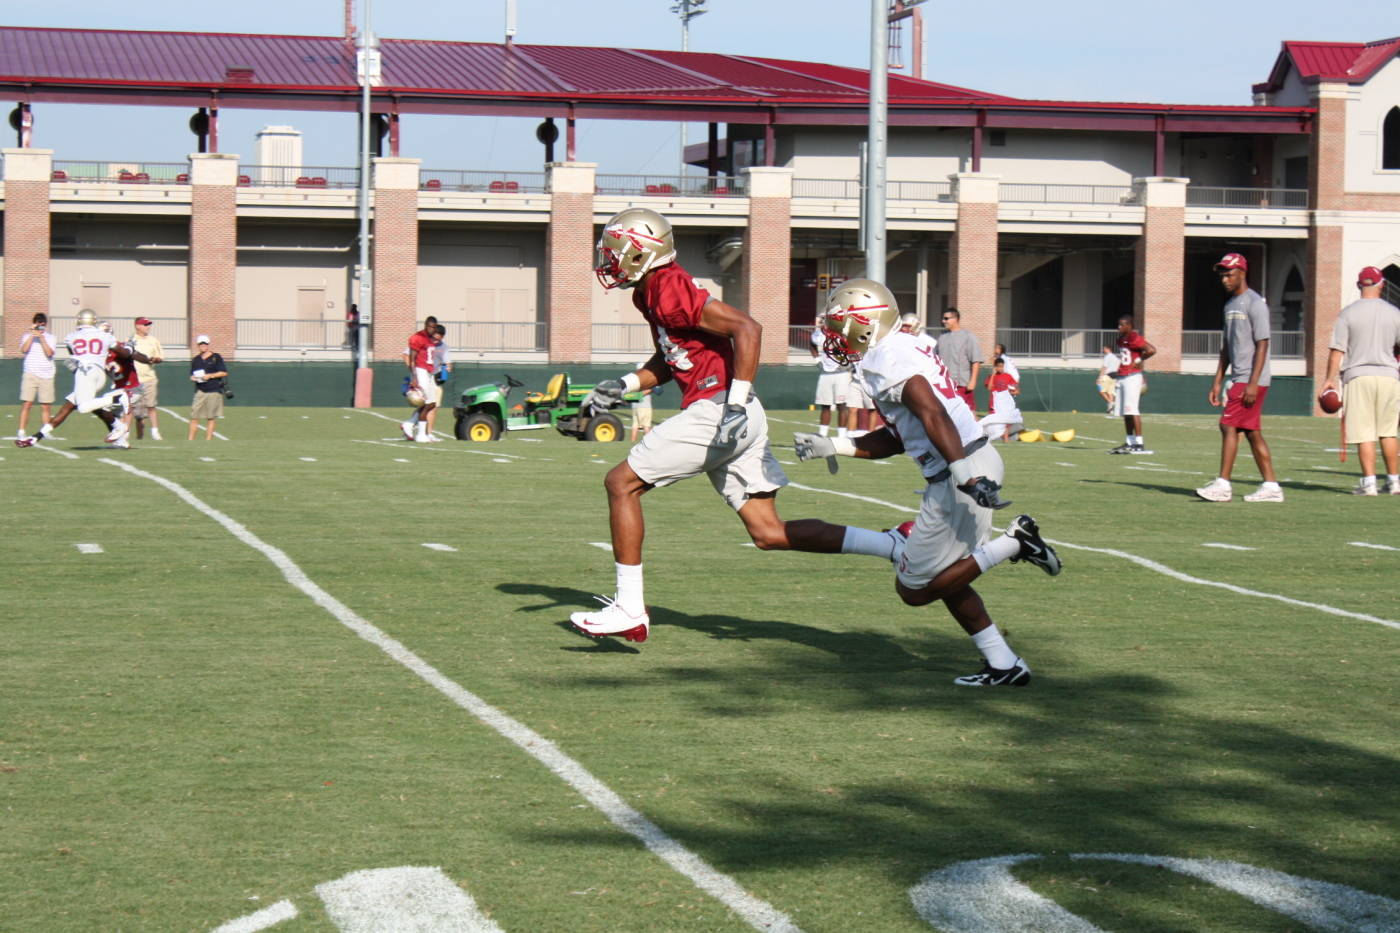 Football Practice #1 - August 7th, 2009 (courtesy of Seminoles.com)